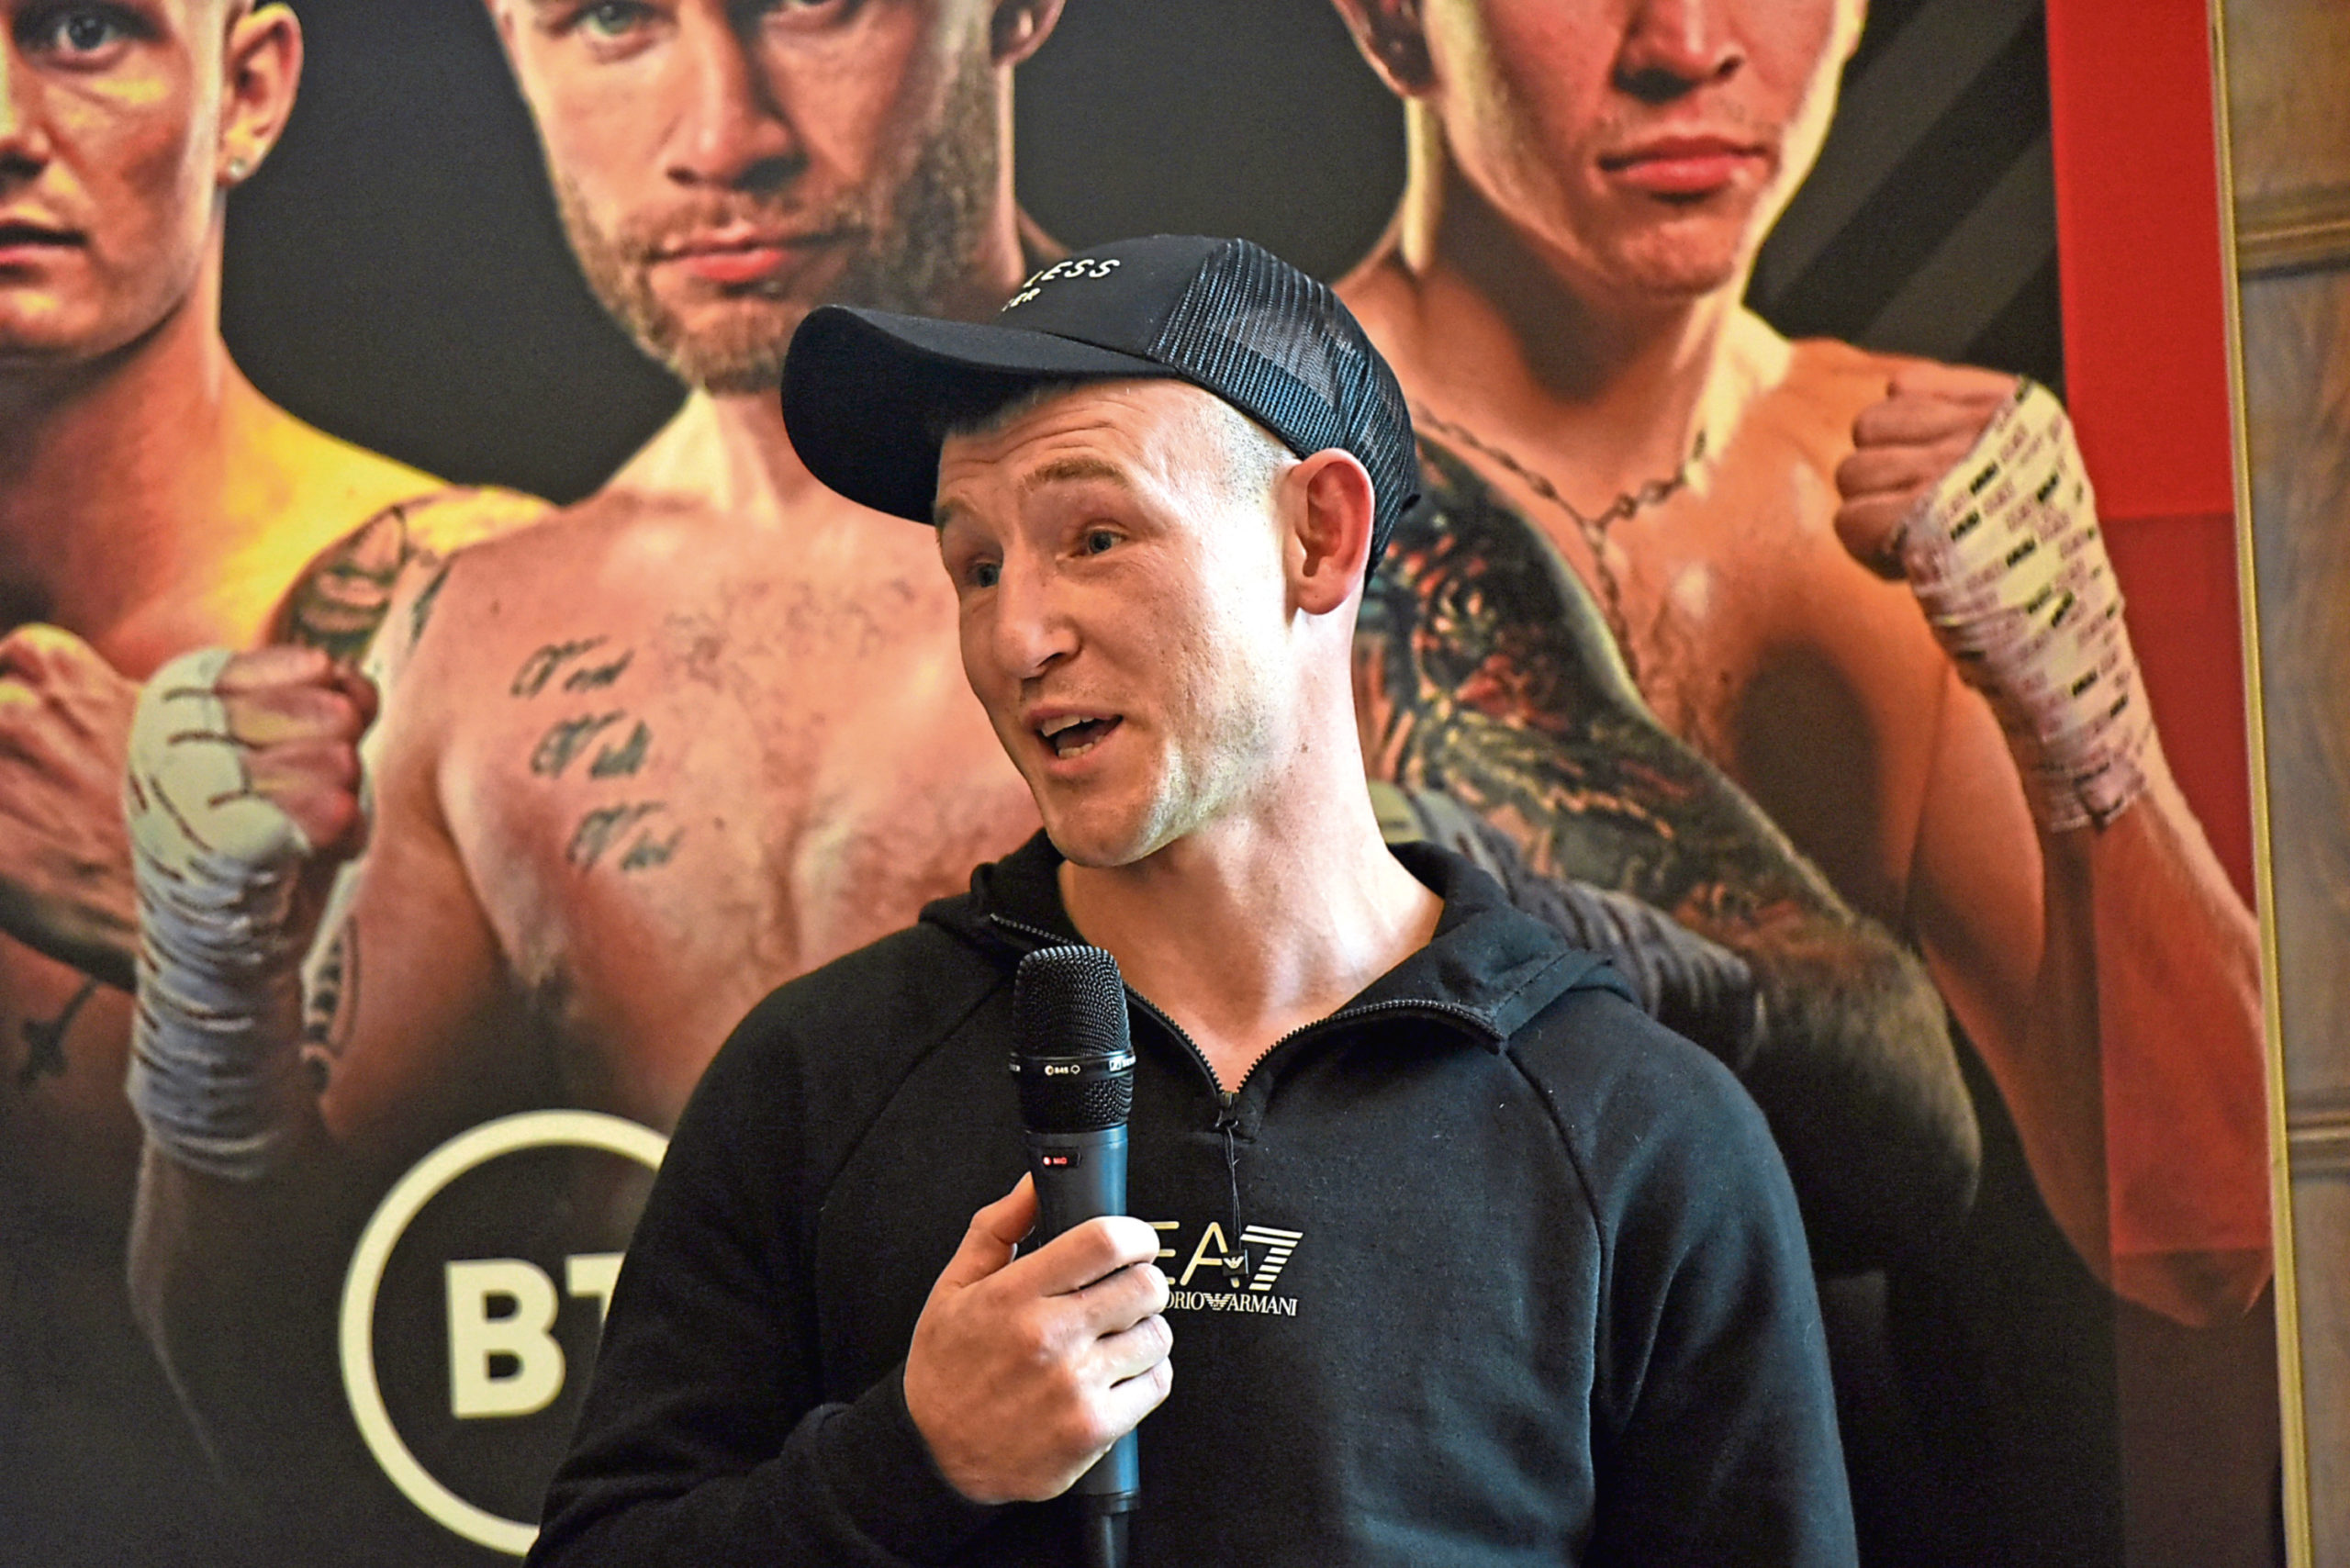 Darren Traynor during the pre-fight press conference.